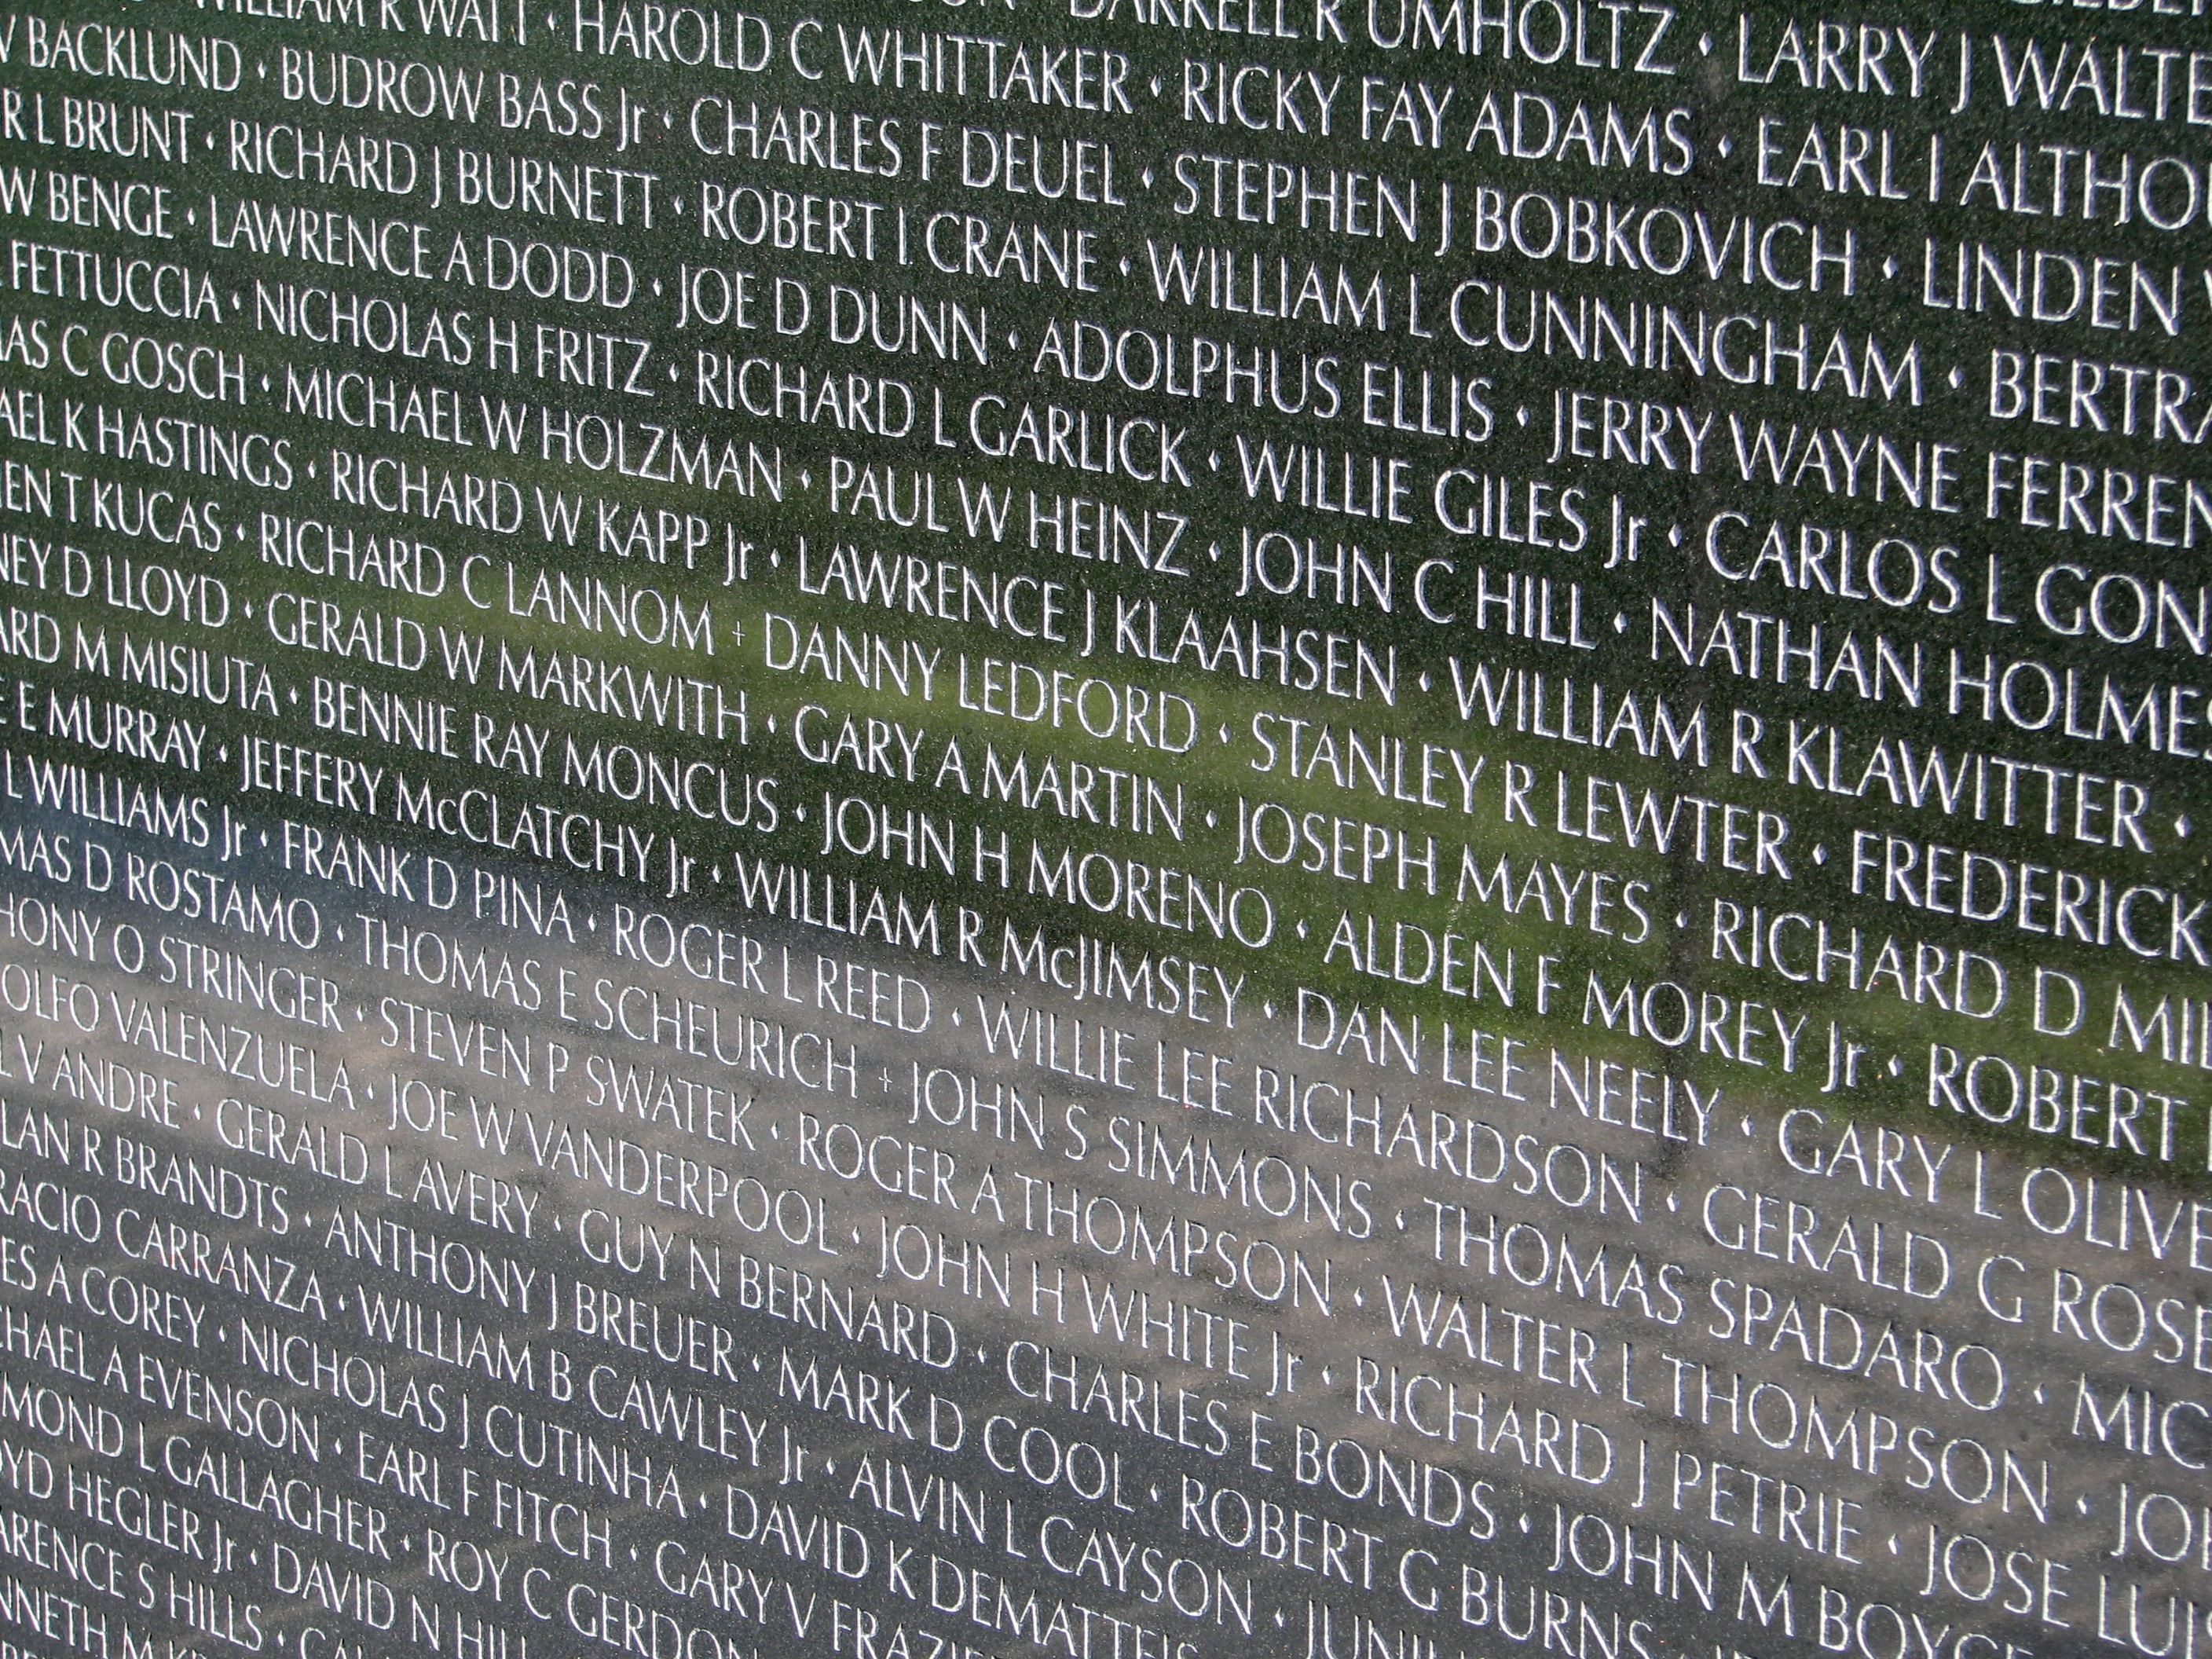 Names of Vietnam Veterans.jpg